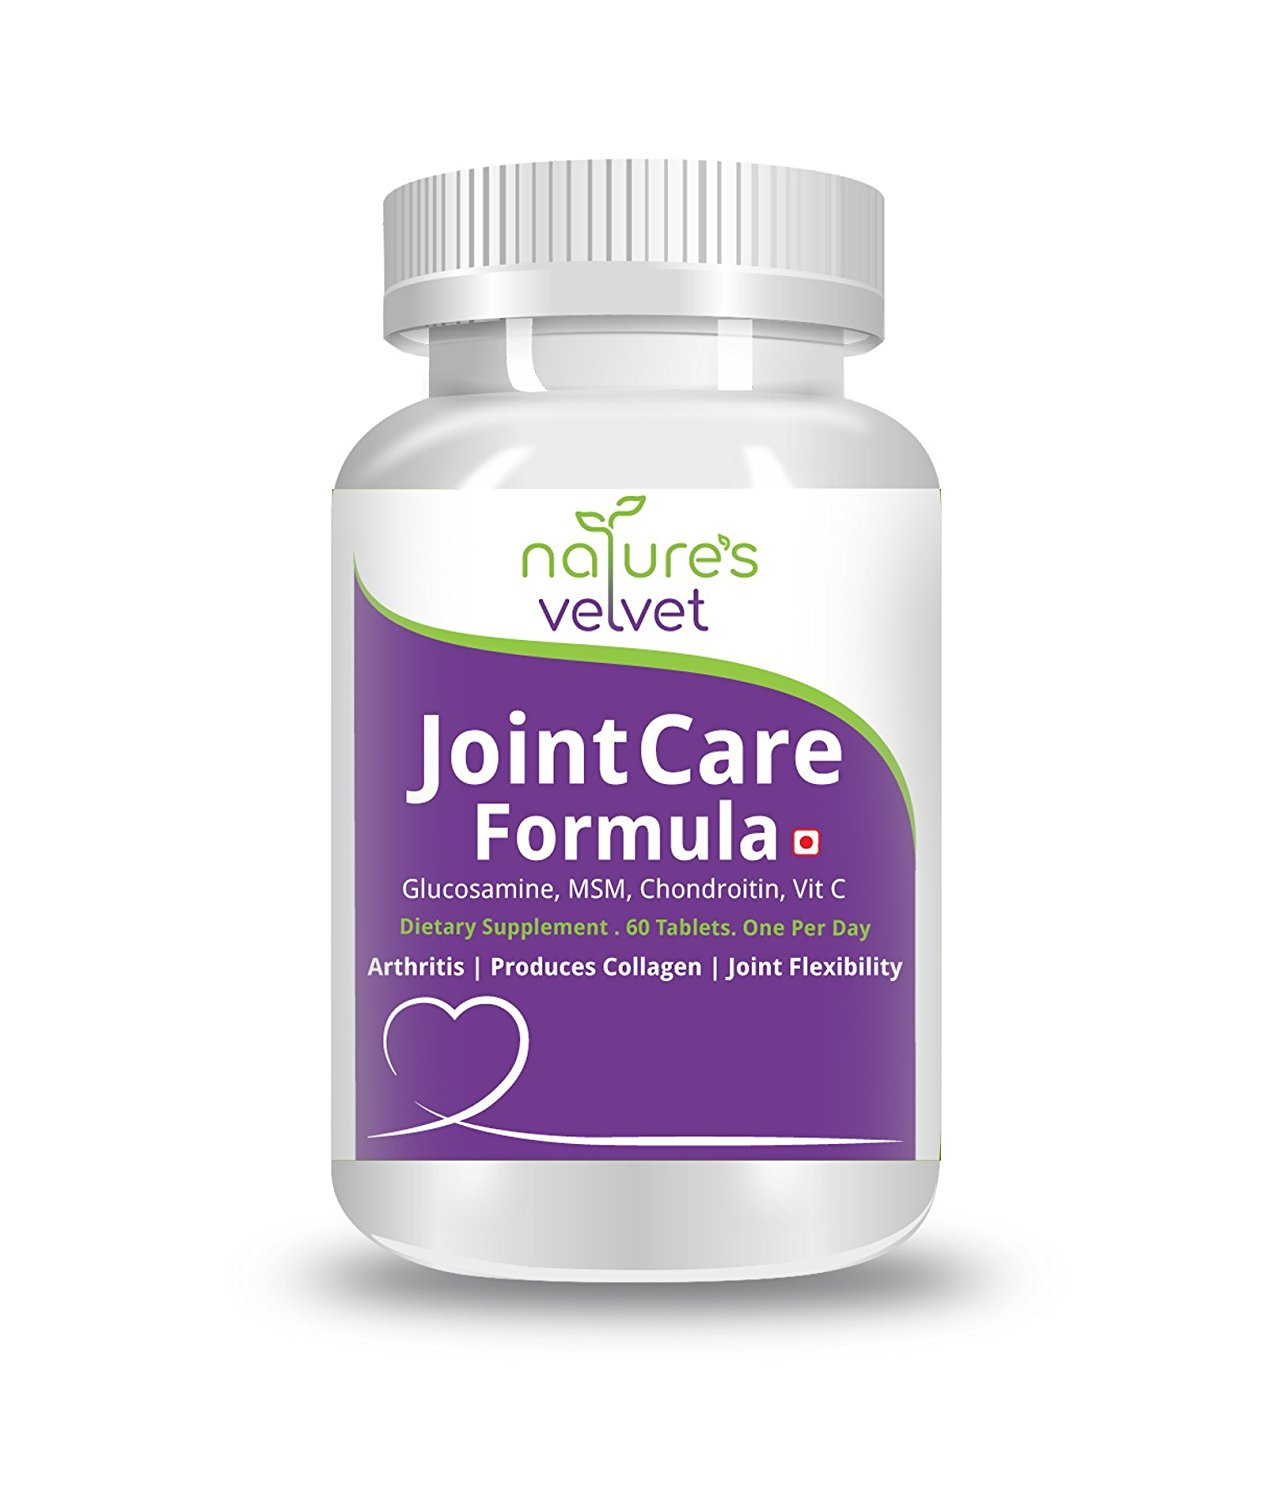 Natures Velvet Lifecare: Joint Care Formula 60 Tablets - Pack of 1